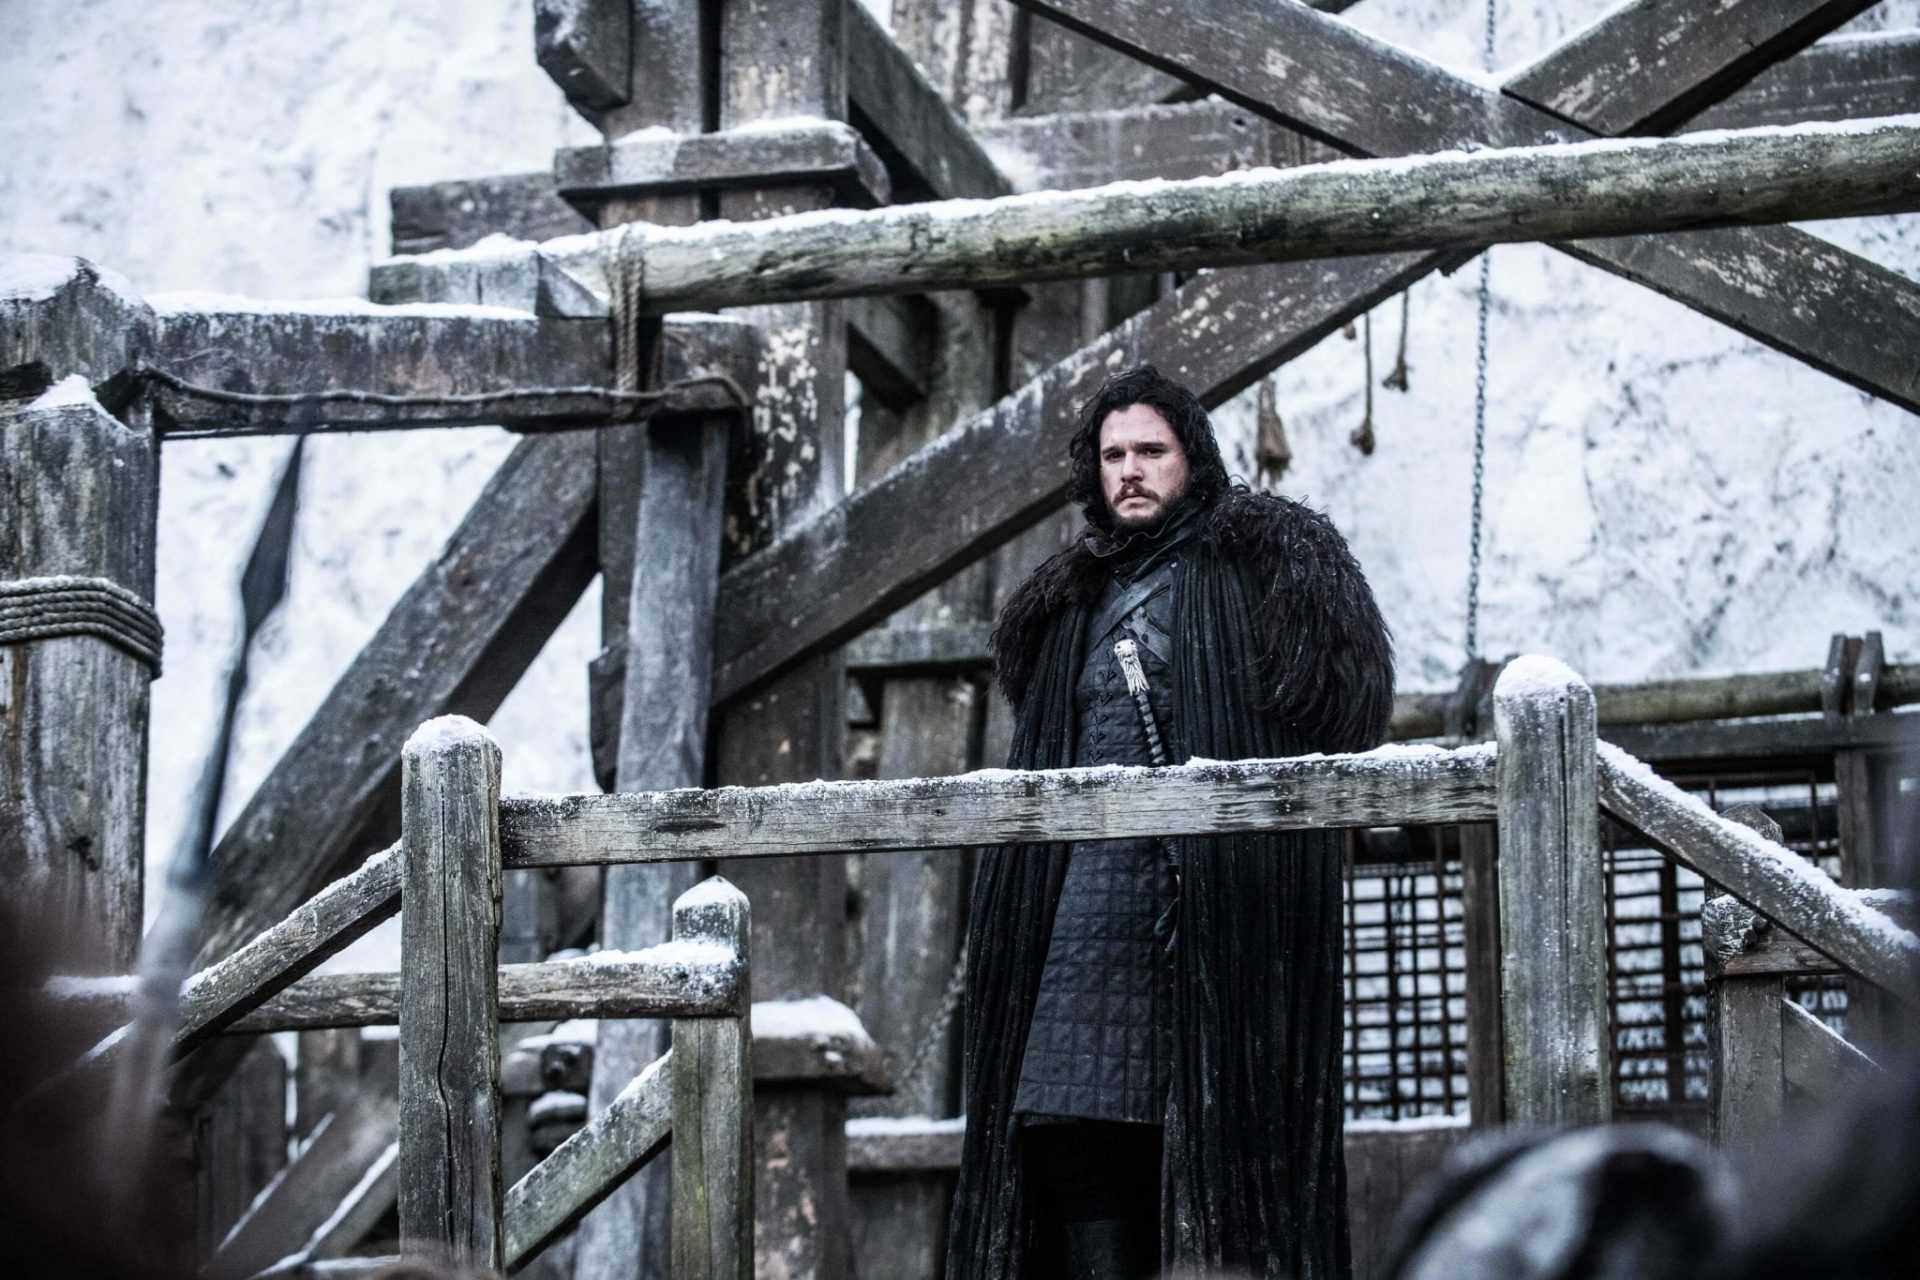 Jon Snow na Patrulha da Noite no último episódio de Game of Thrones.